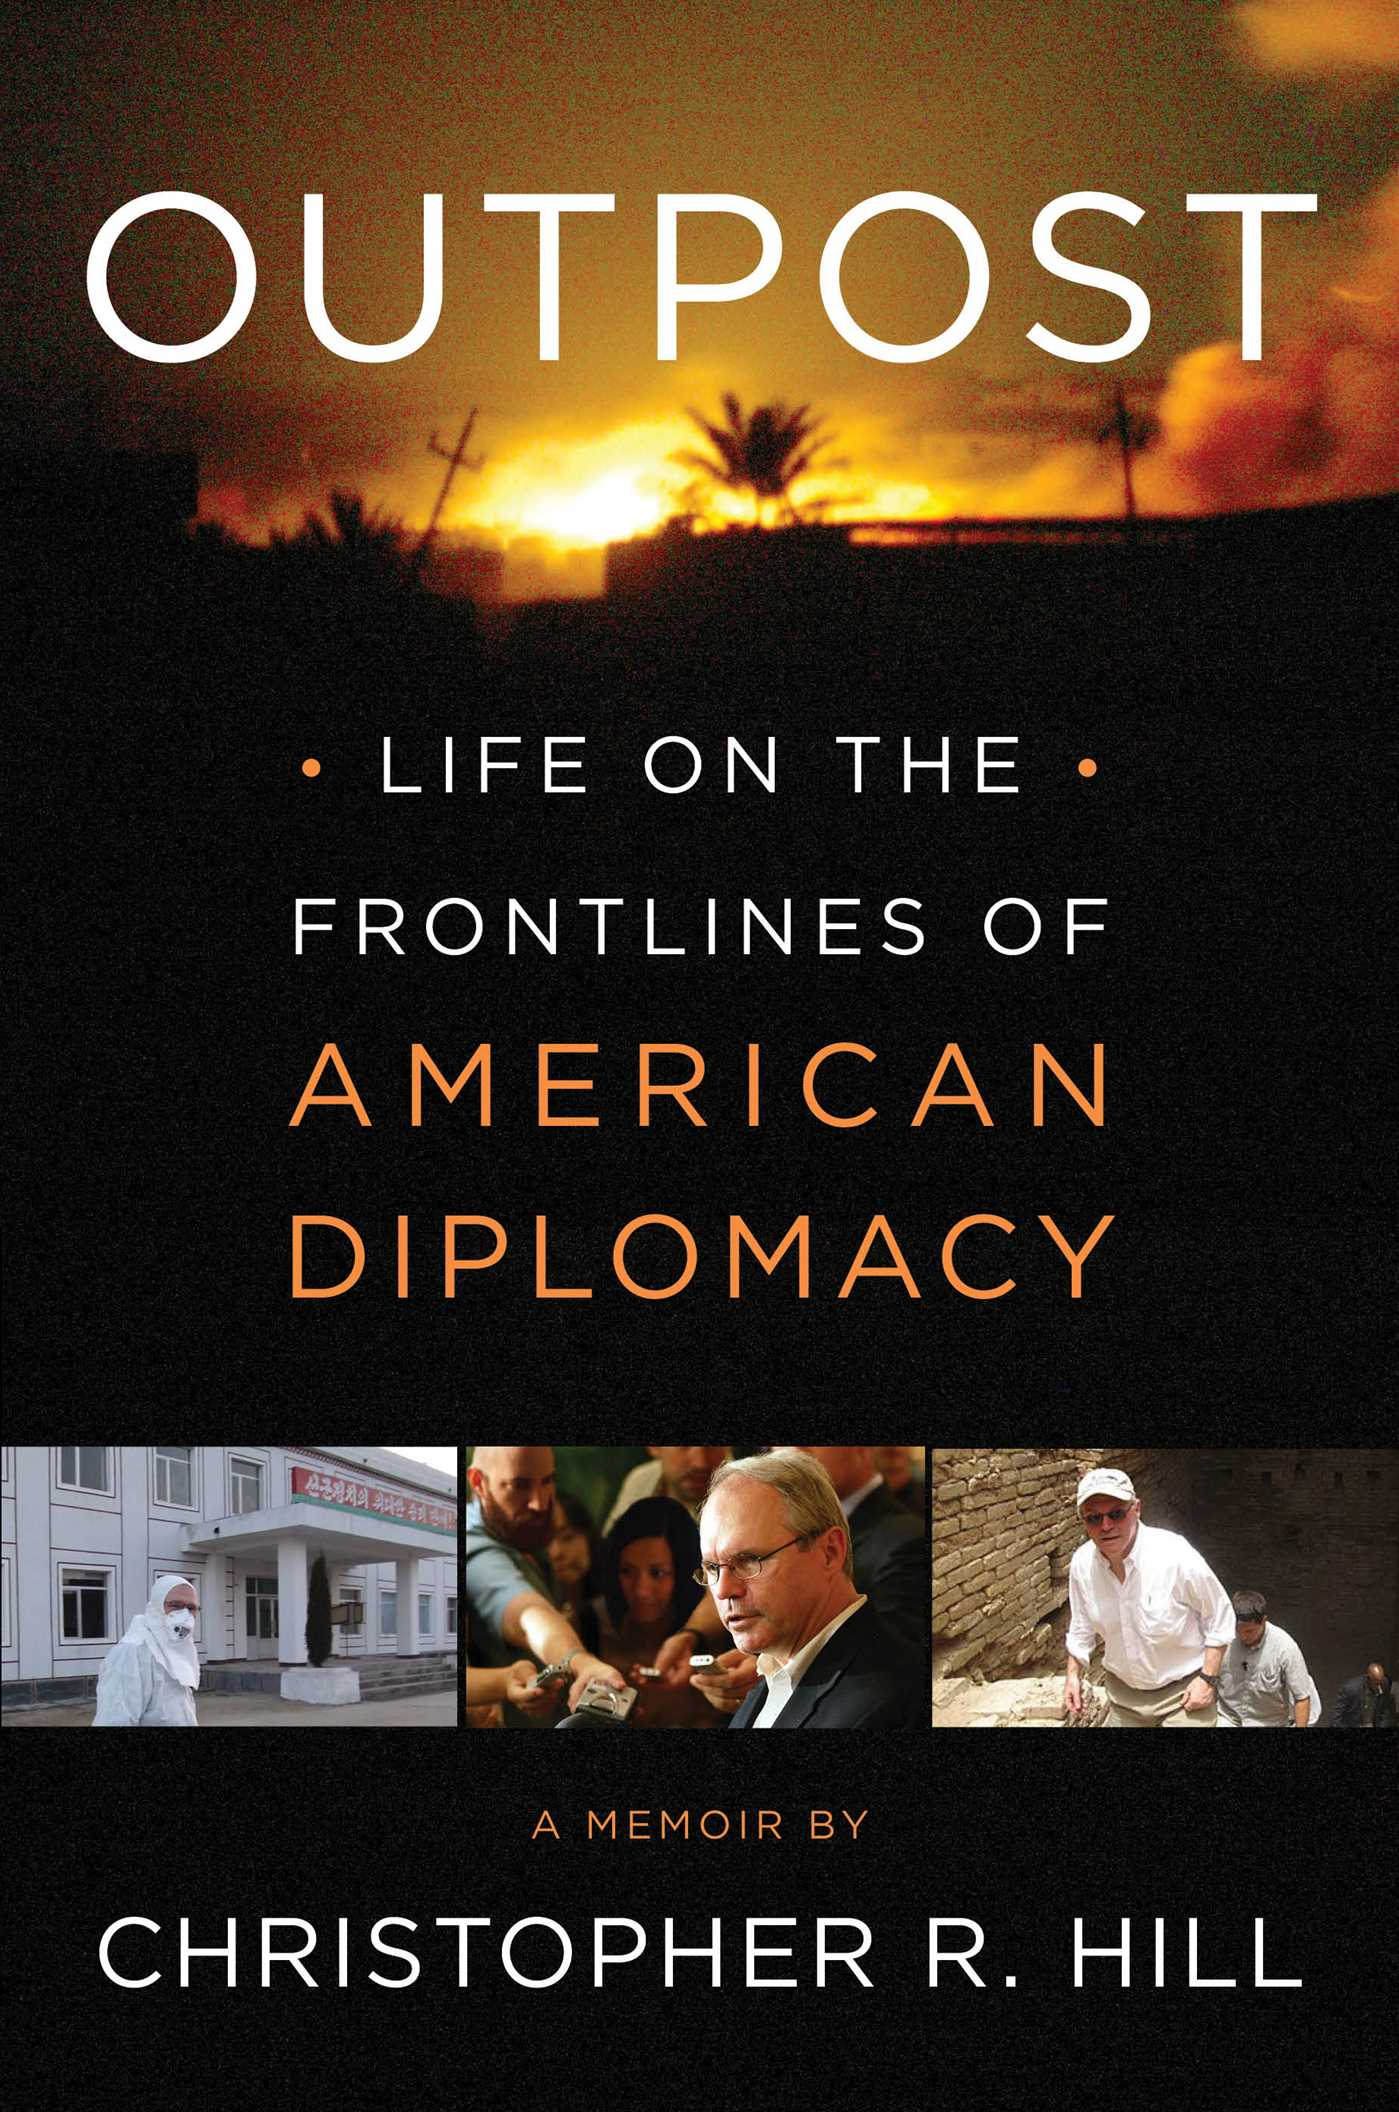 Christopher R. Hill: Outpost. Life on the Frontlines of American Diplomacy. Simon and Schuster 2014, 448 s.